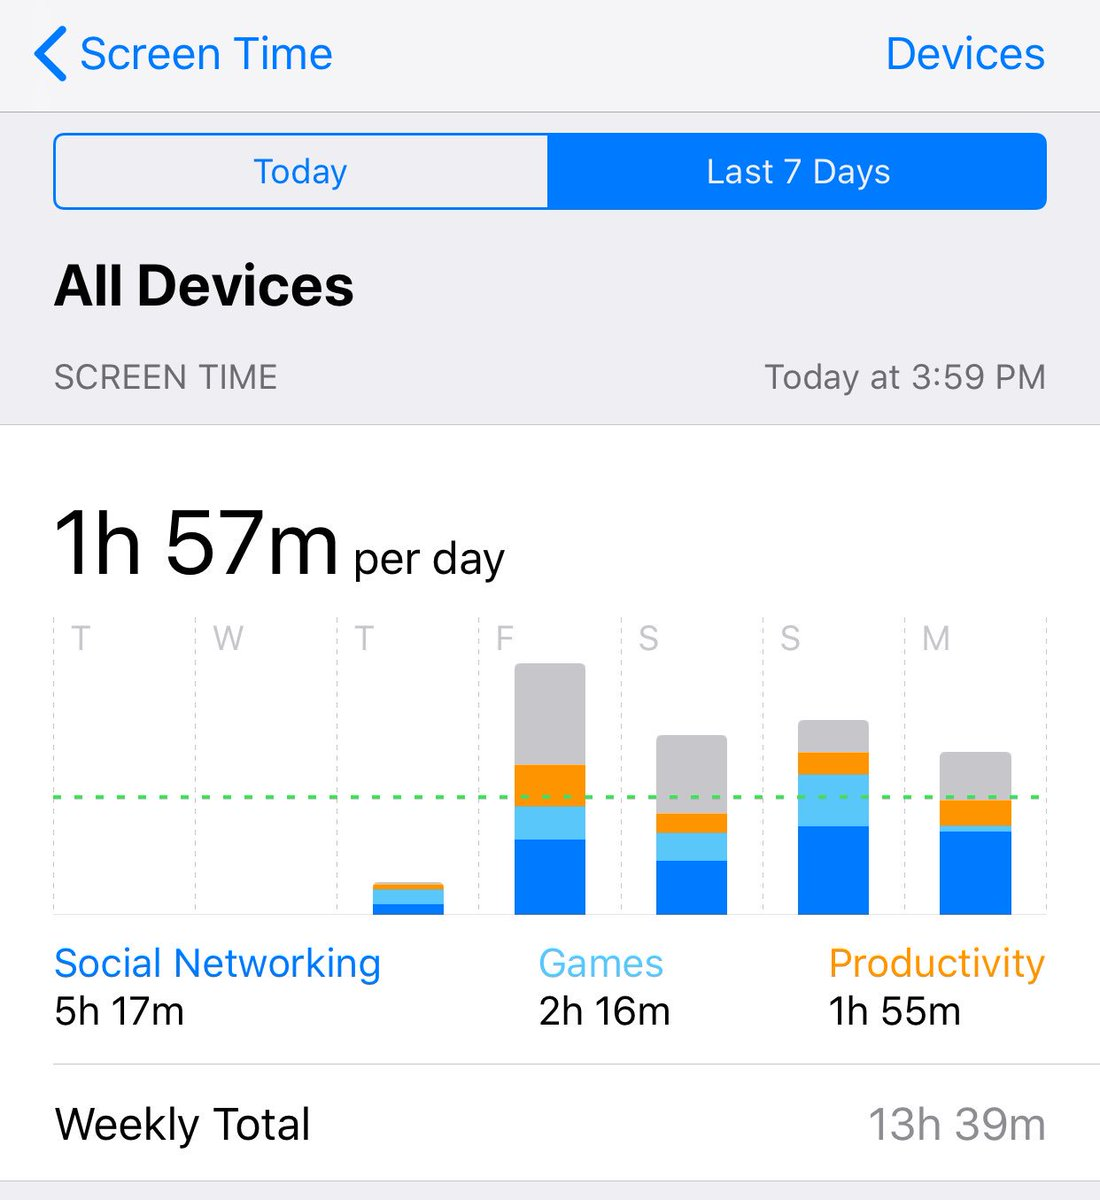 neil miller on twitter the iphone screen time app is going to make